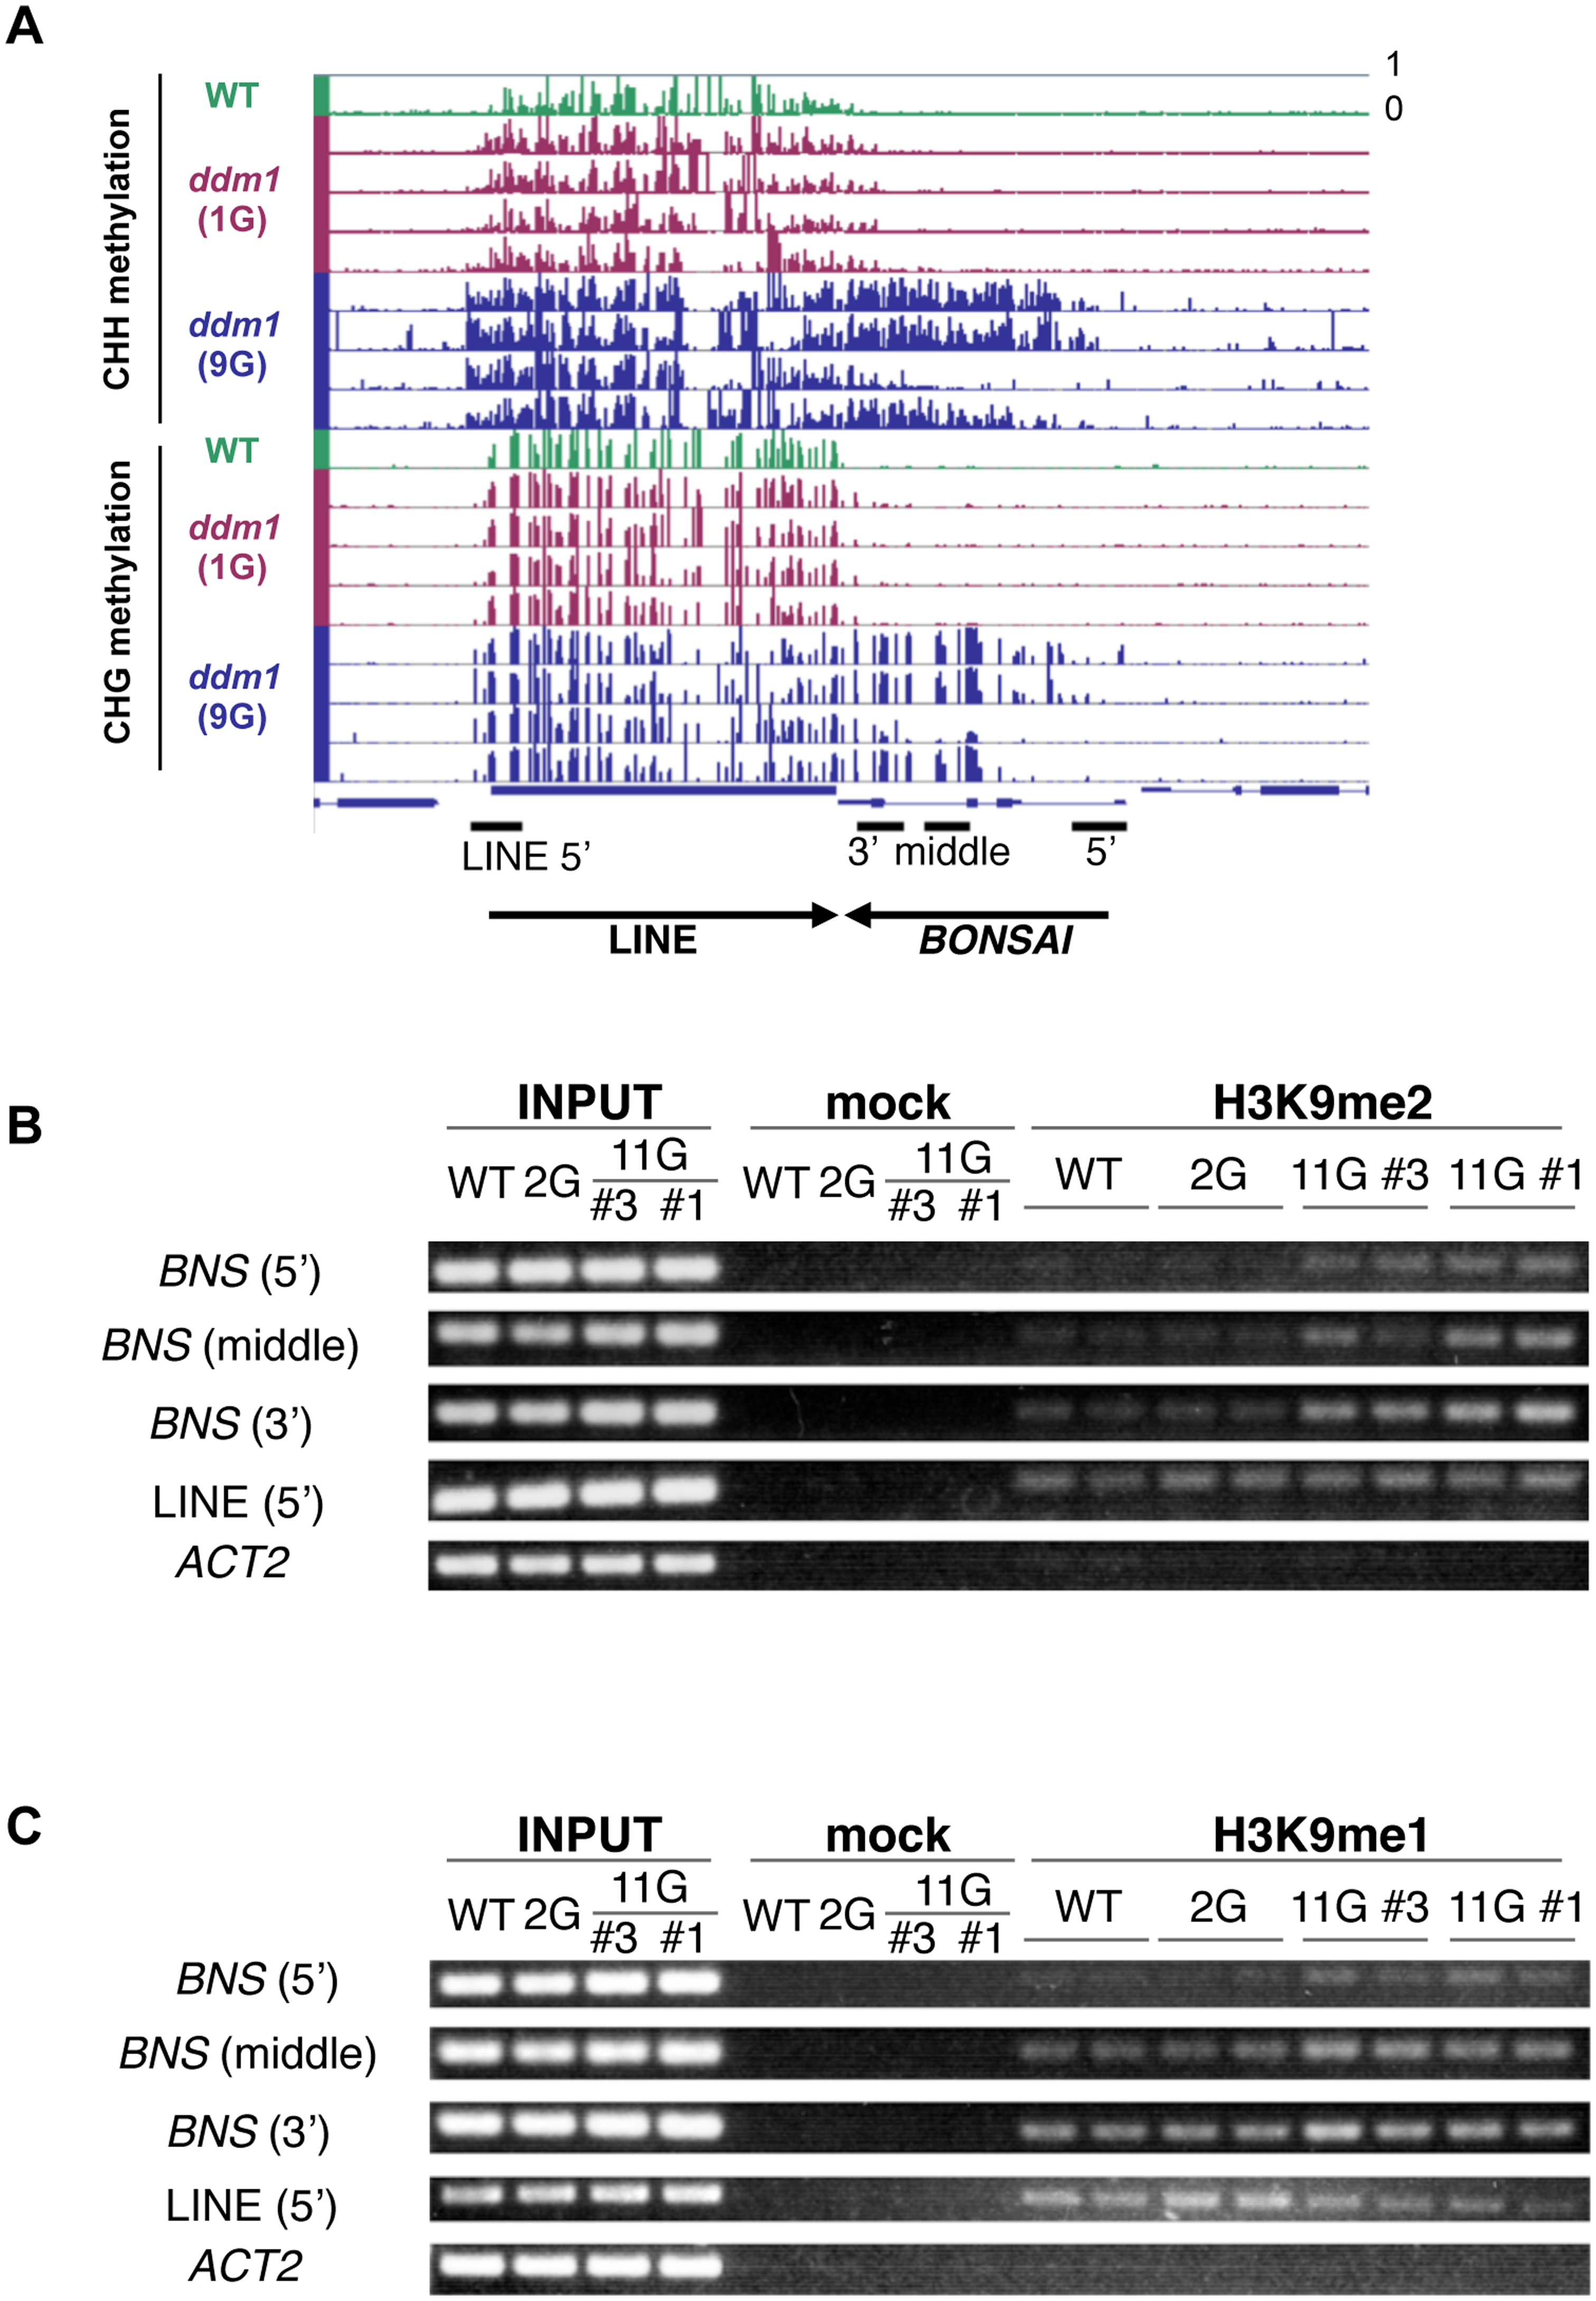 <i>BONSAI</i> hypermethylation in self-pollinated <i>ddm1</i> mutants is associated with H3K9 methylation.